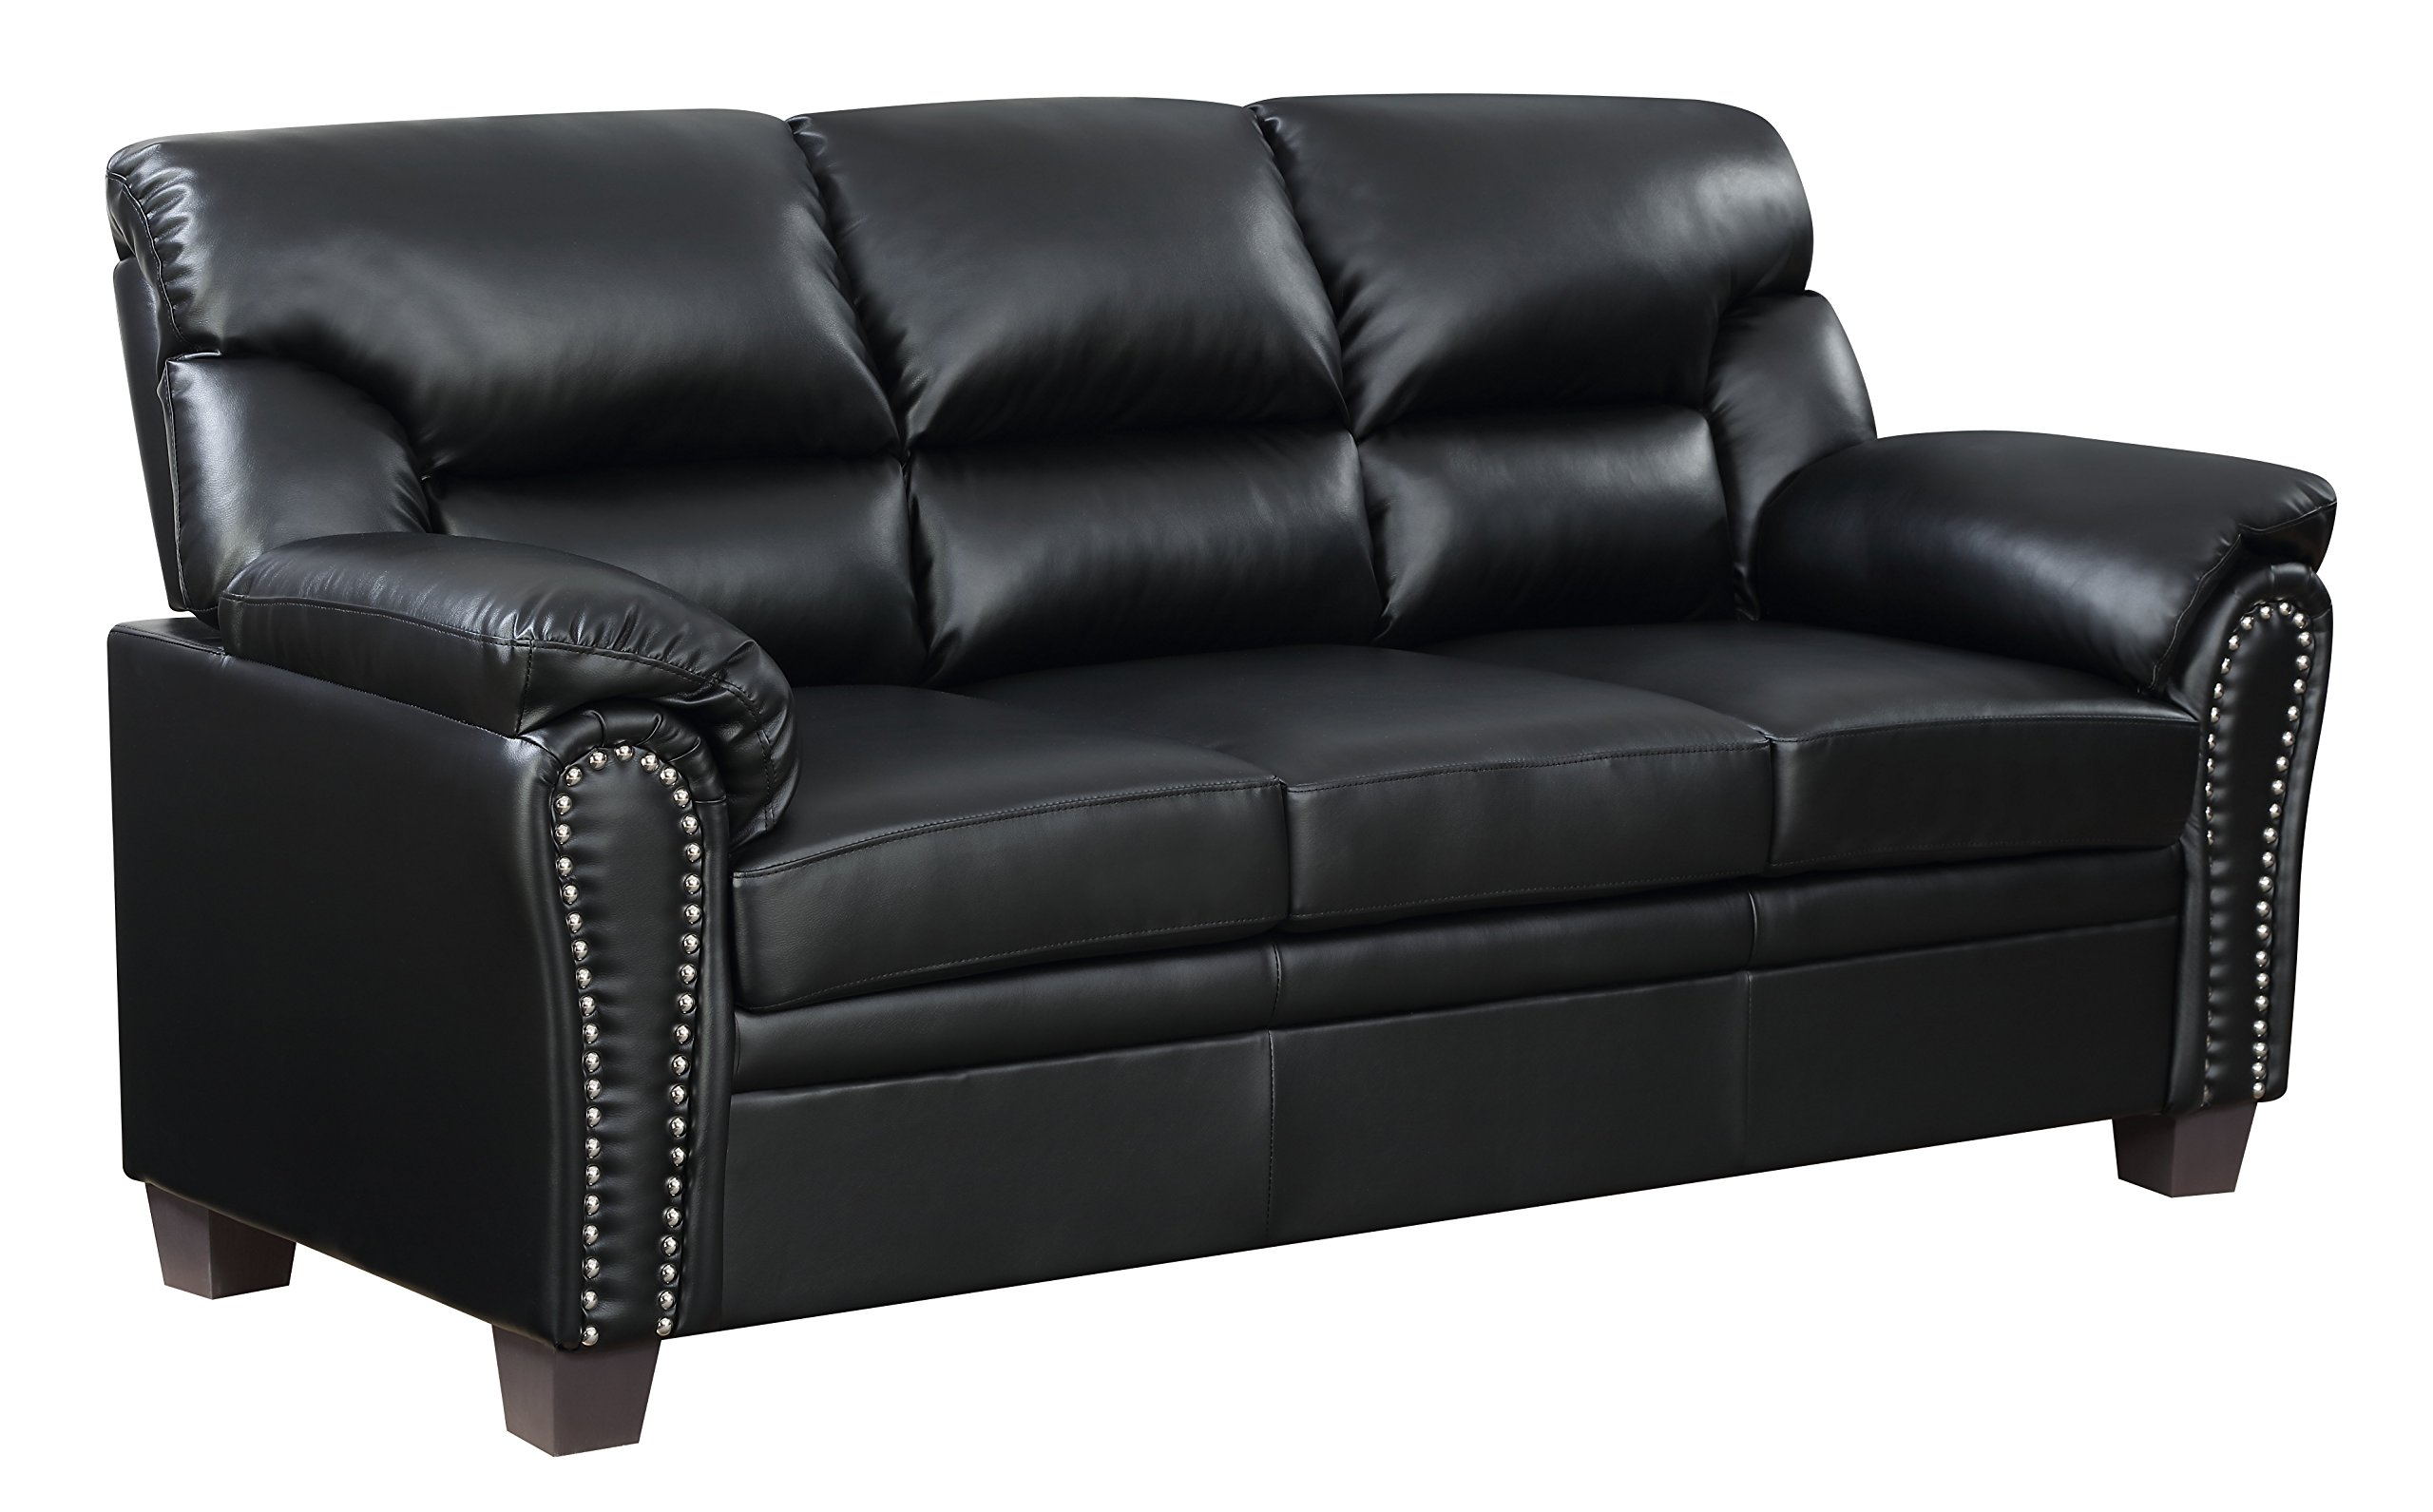 Furniture World Jefferson Sofa, Black Leather Look